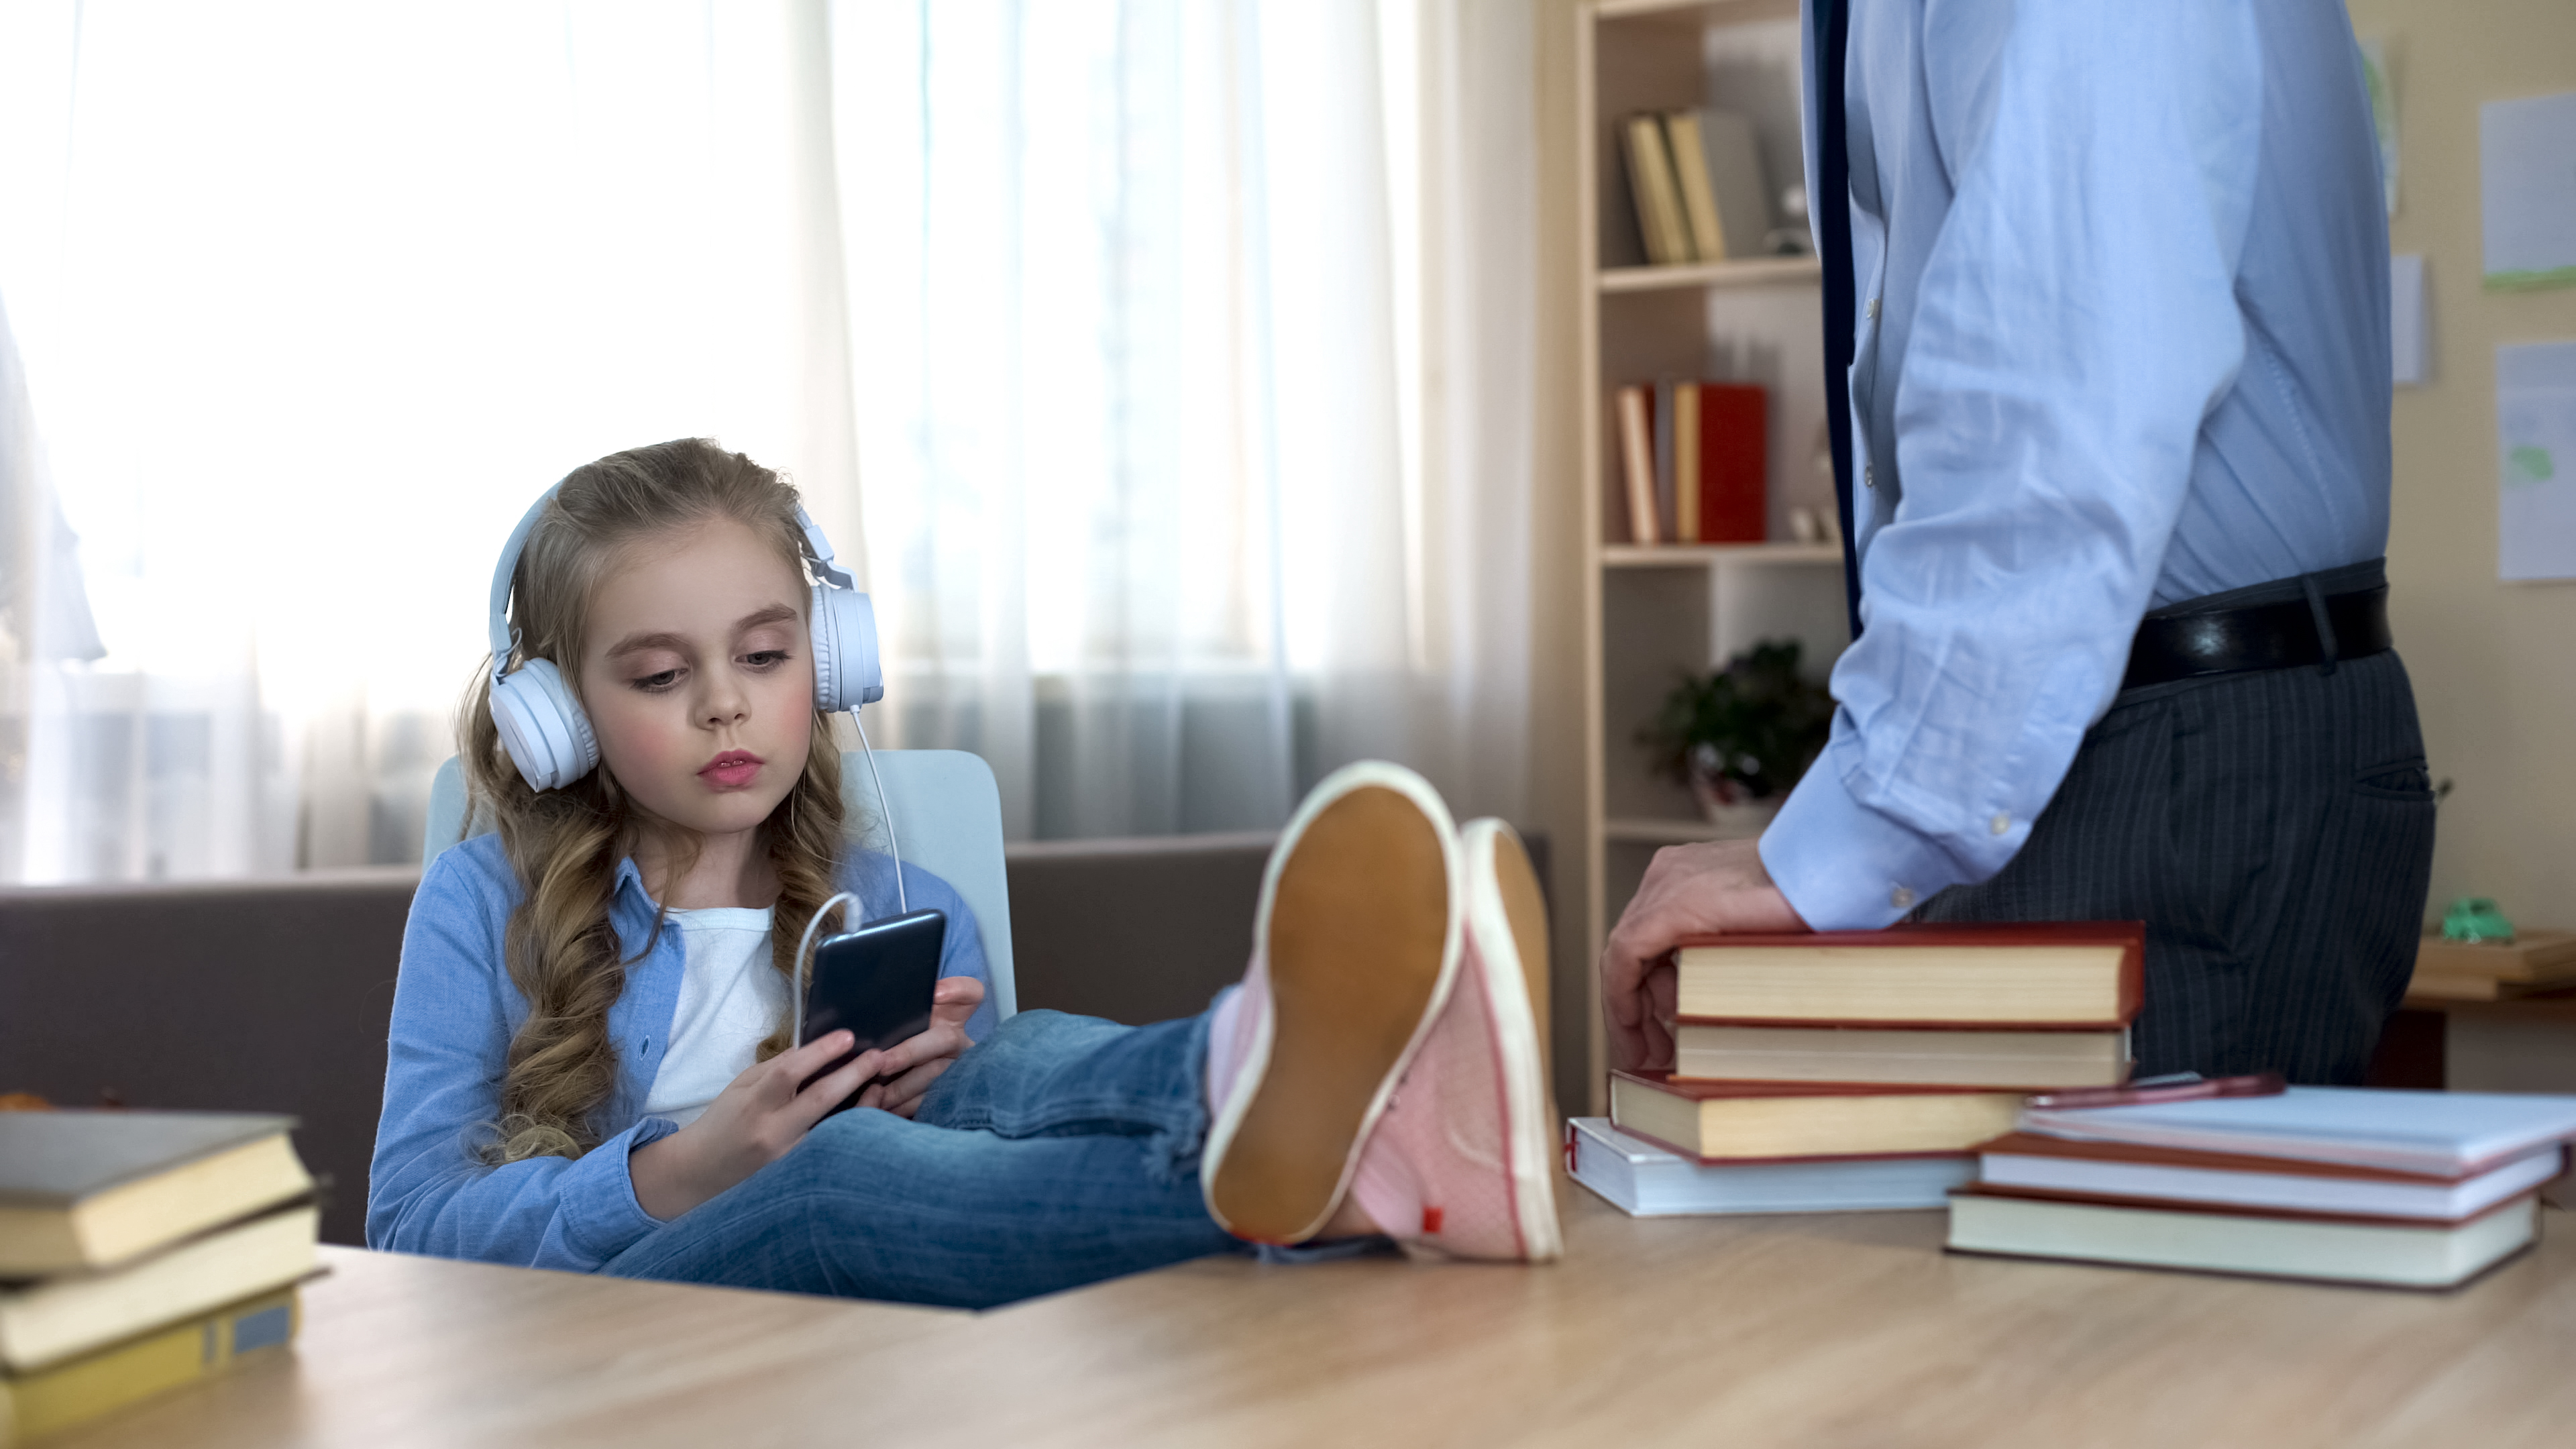 A young girl wearing headphones while ignoring her dad.